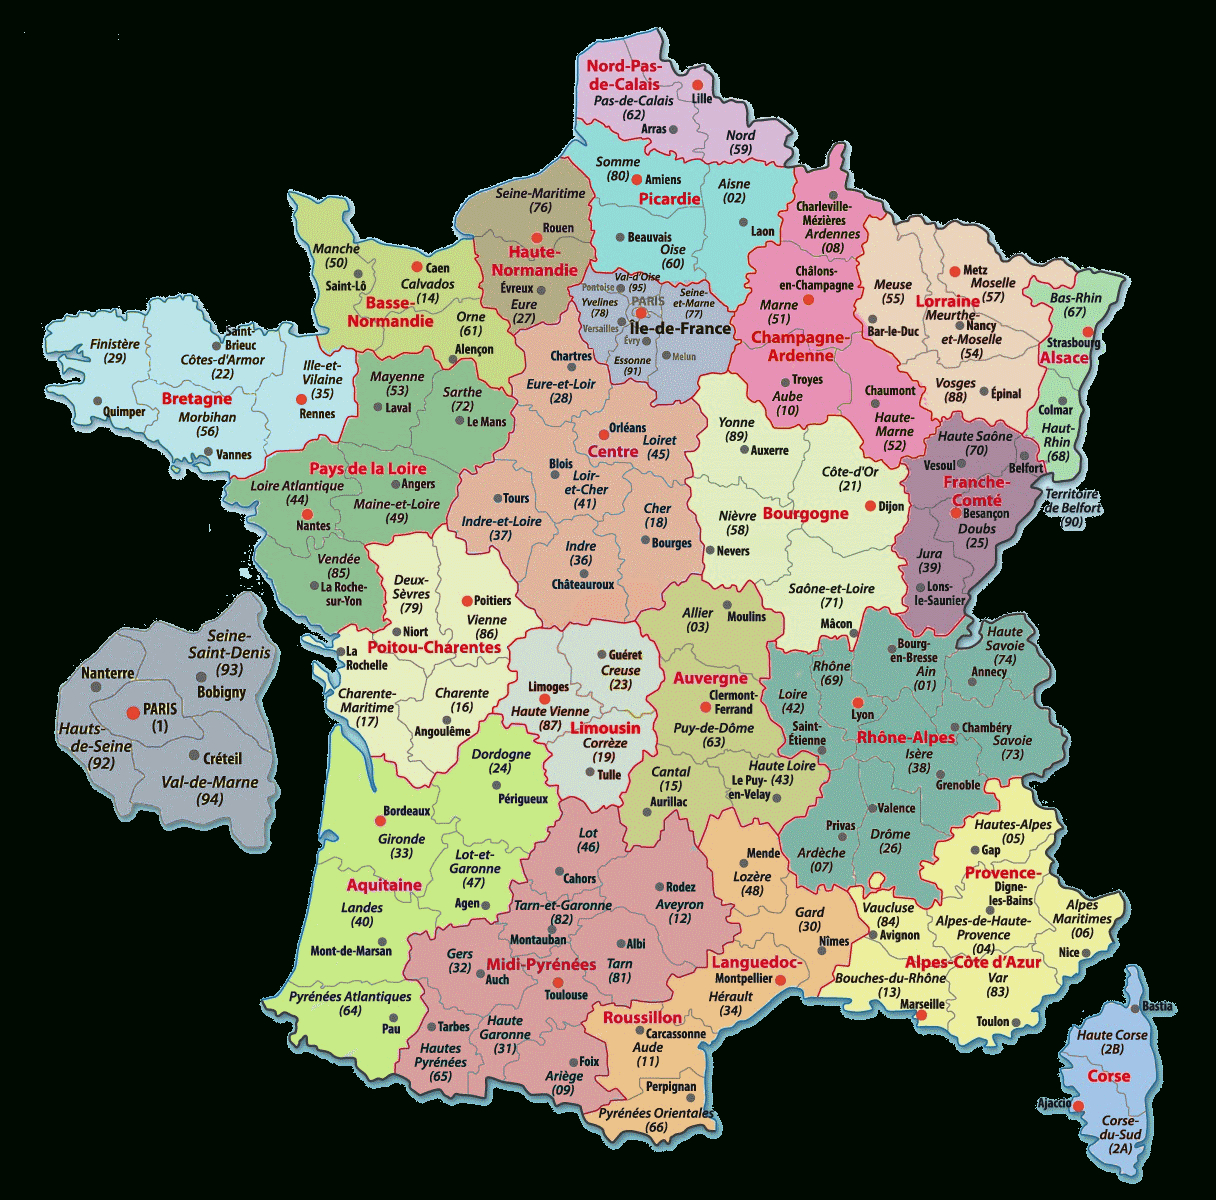 Carte De France Departements : Carte Des Départements De France concernant Département 13 Carte